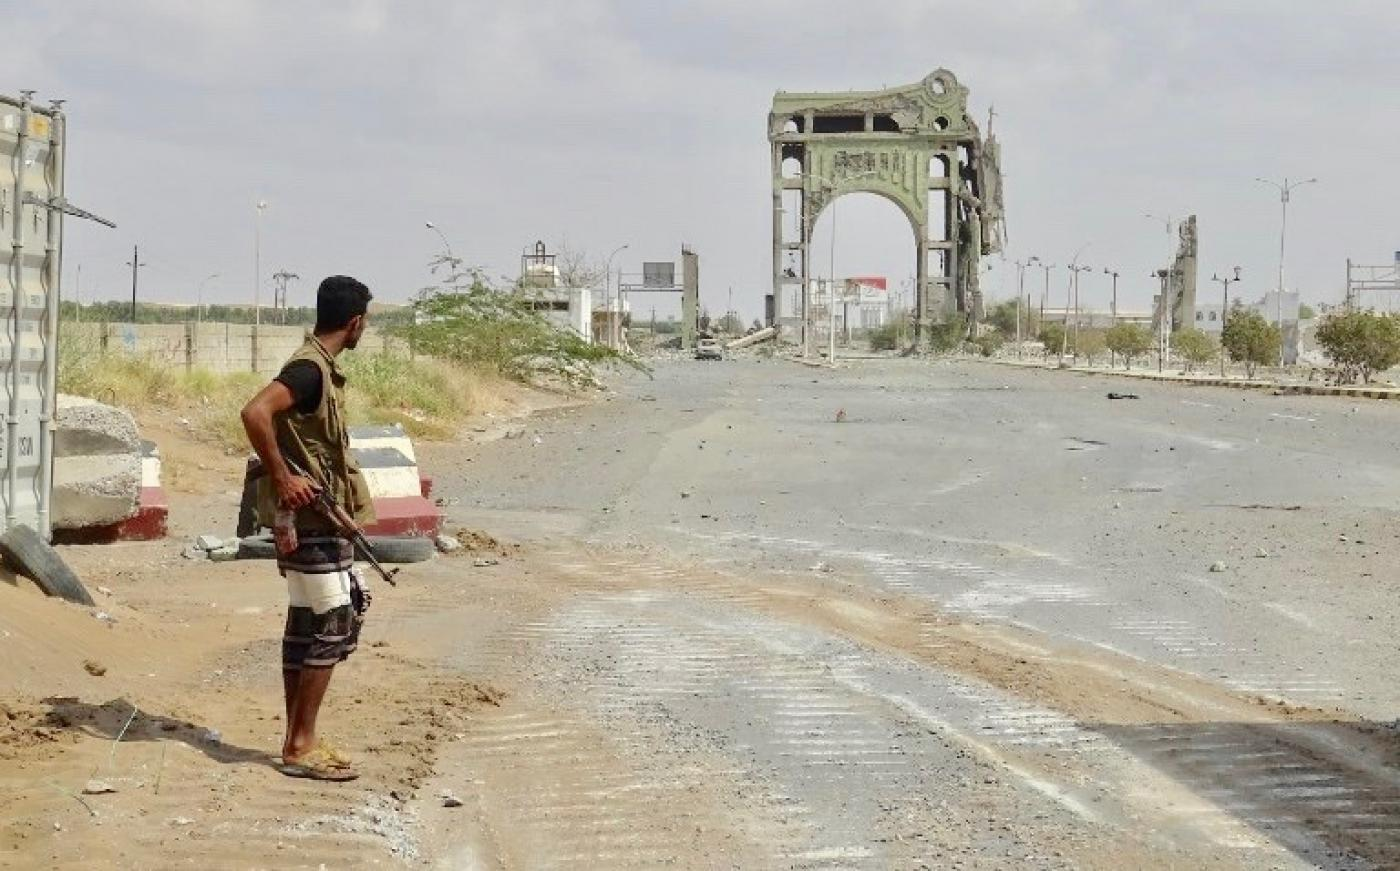 Yemen's warring parties agree on initial redeployment: U.N